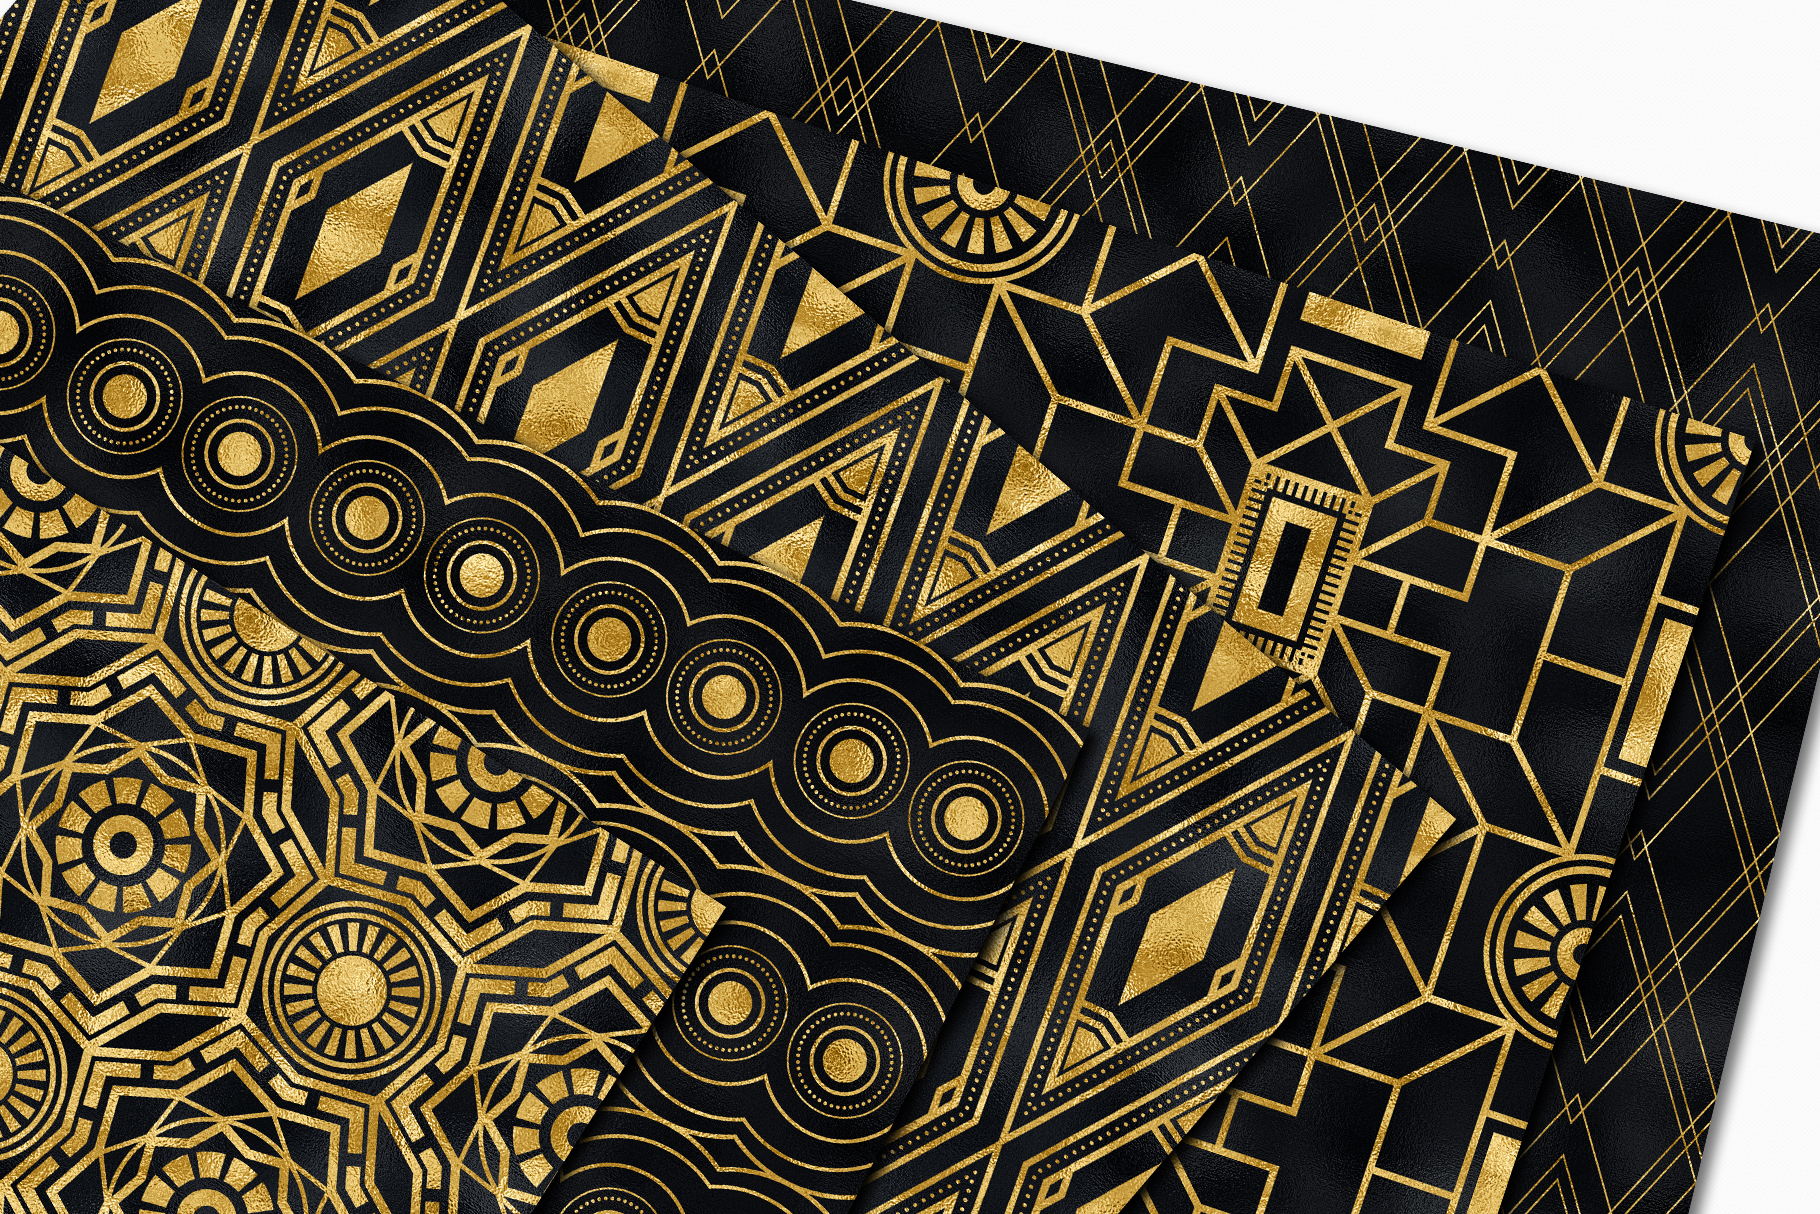 Geometric Art Deco Patterns - 20 Seamless Vector Patterns example image 17